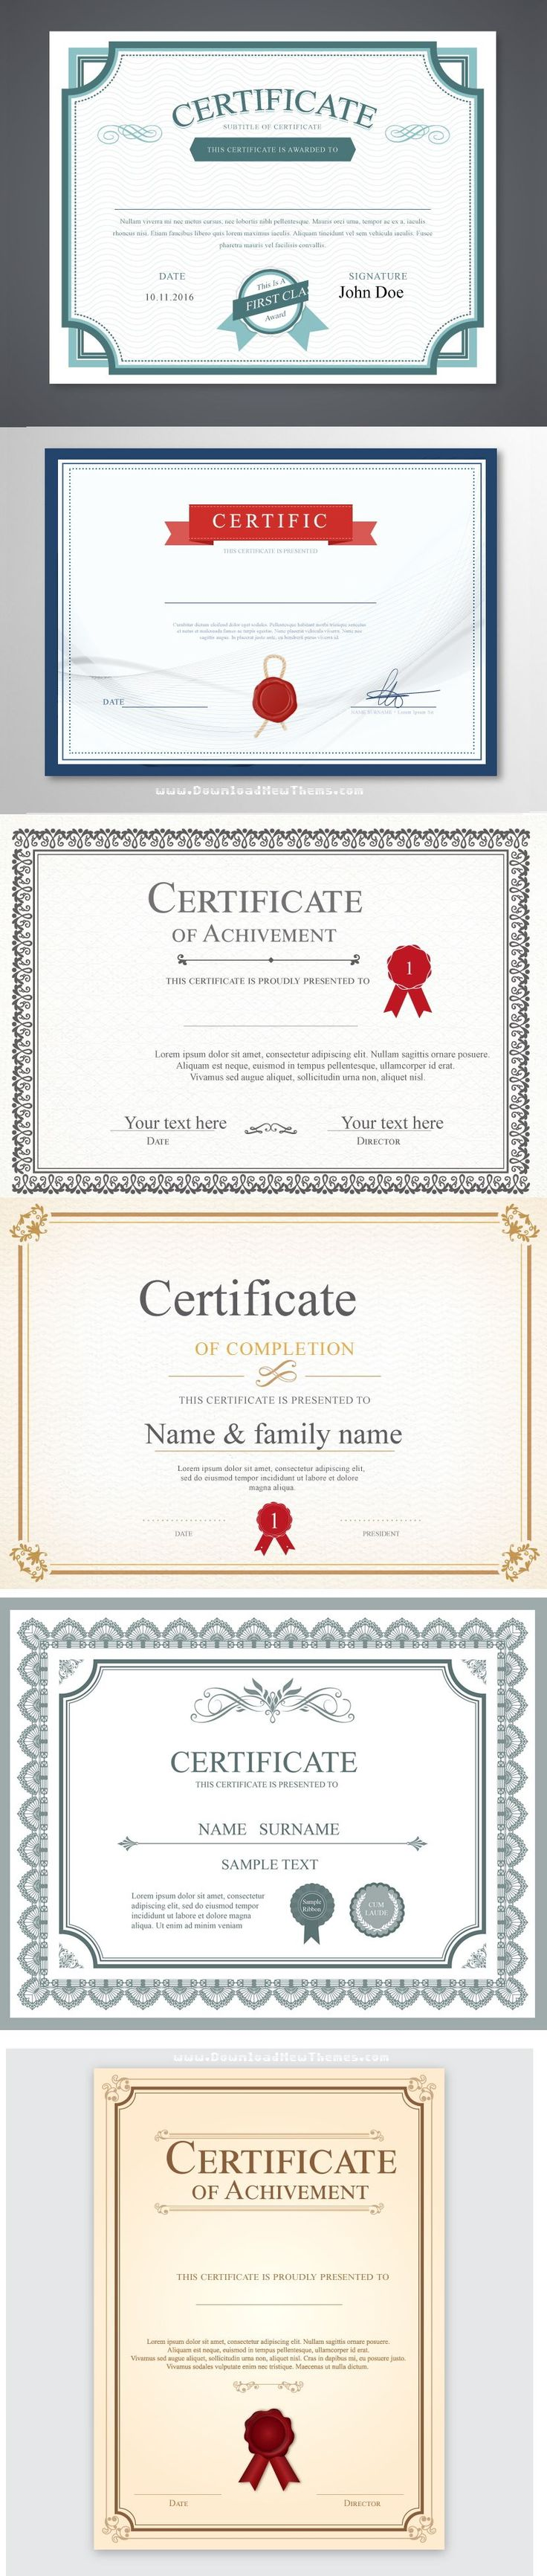 Stunning Vector certificate template 6in1 Download Now #certificates #template #graphics #design